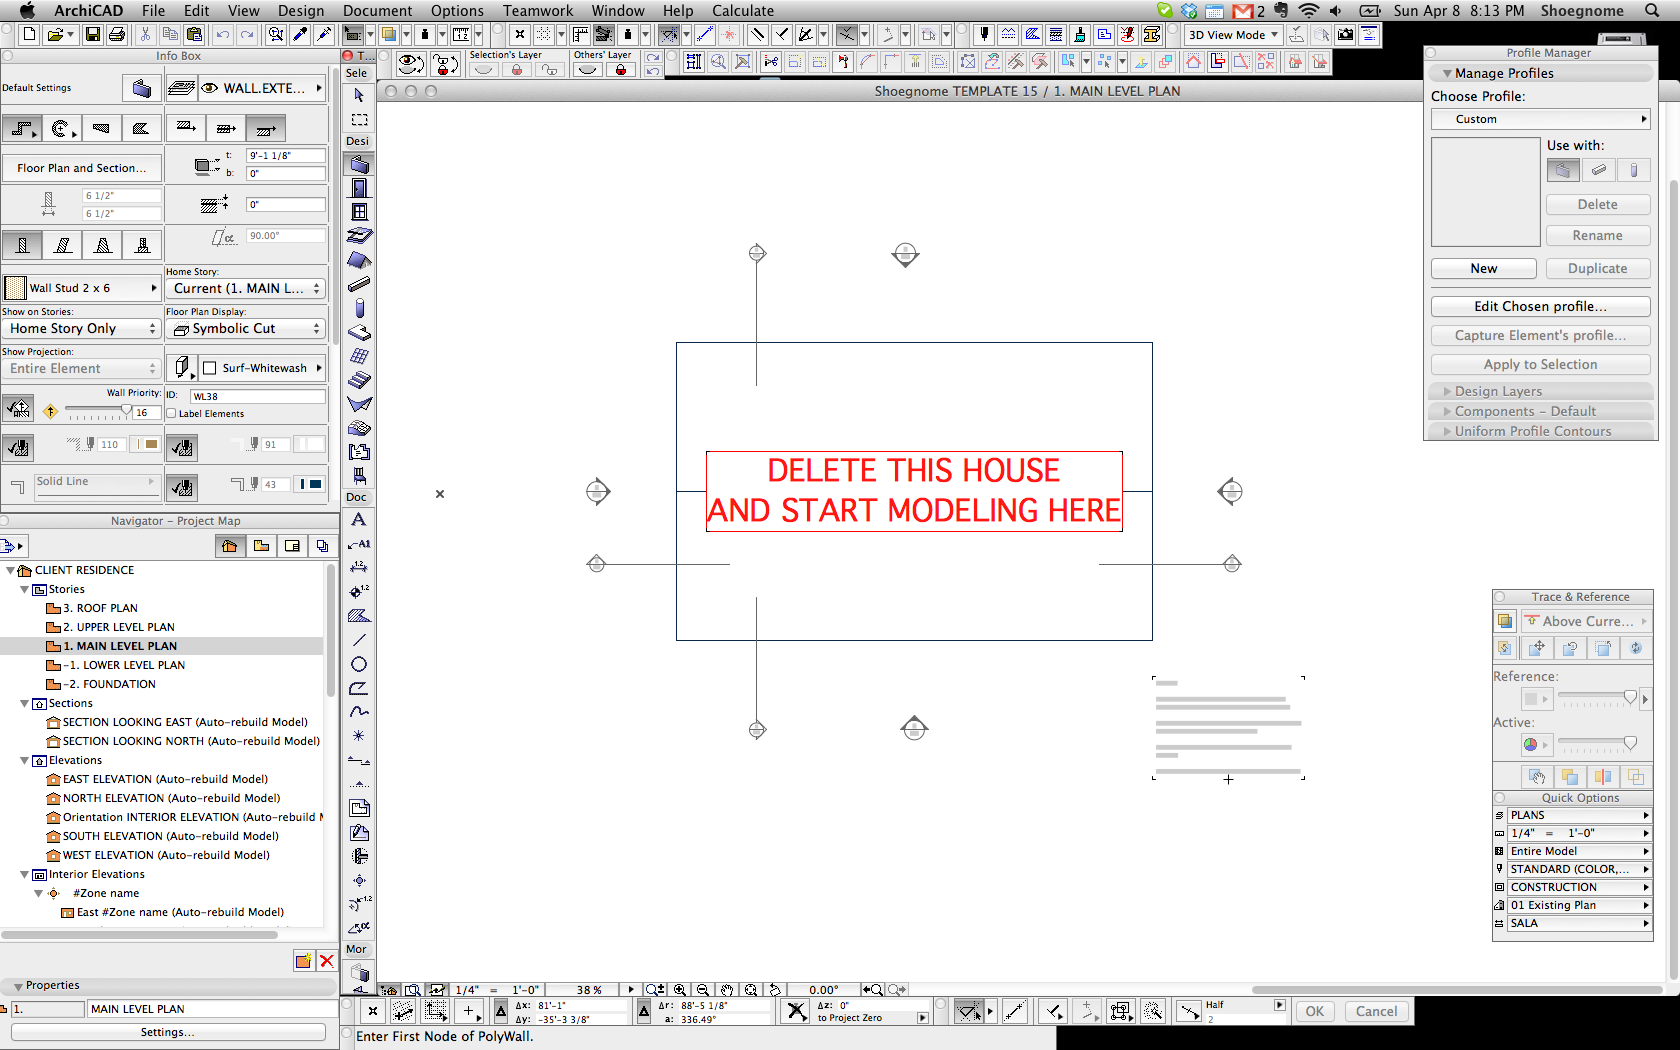 Download Free Archicad 16 For Macos